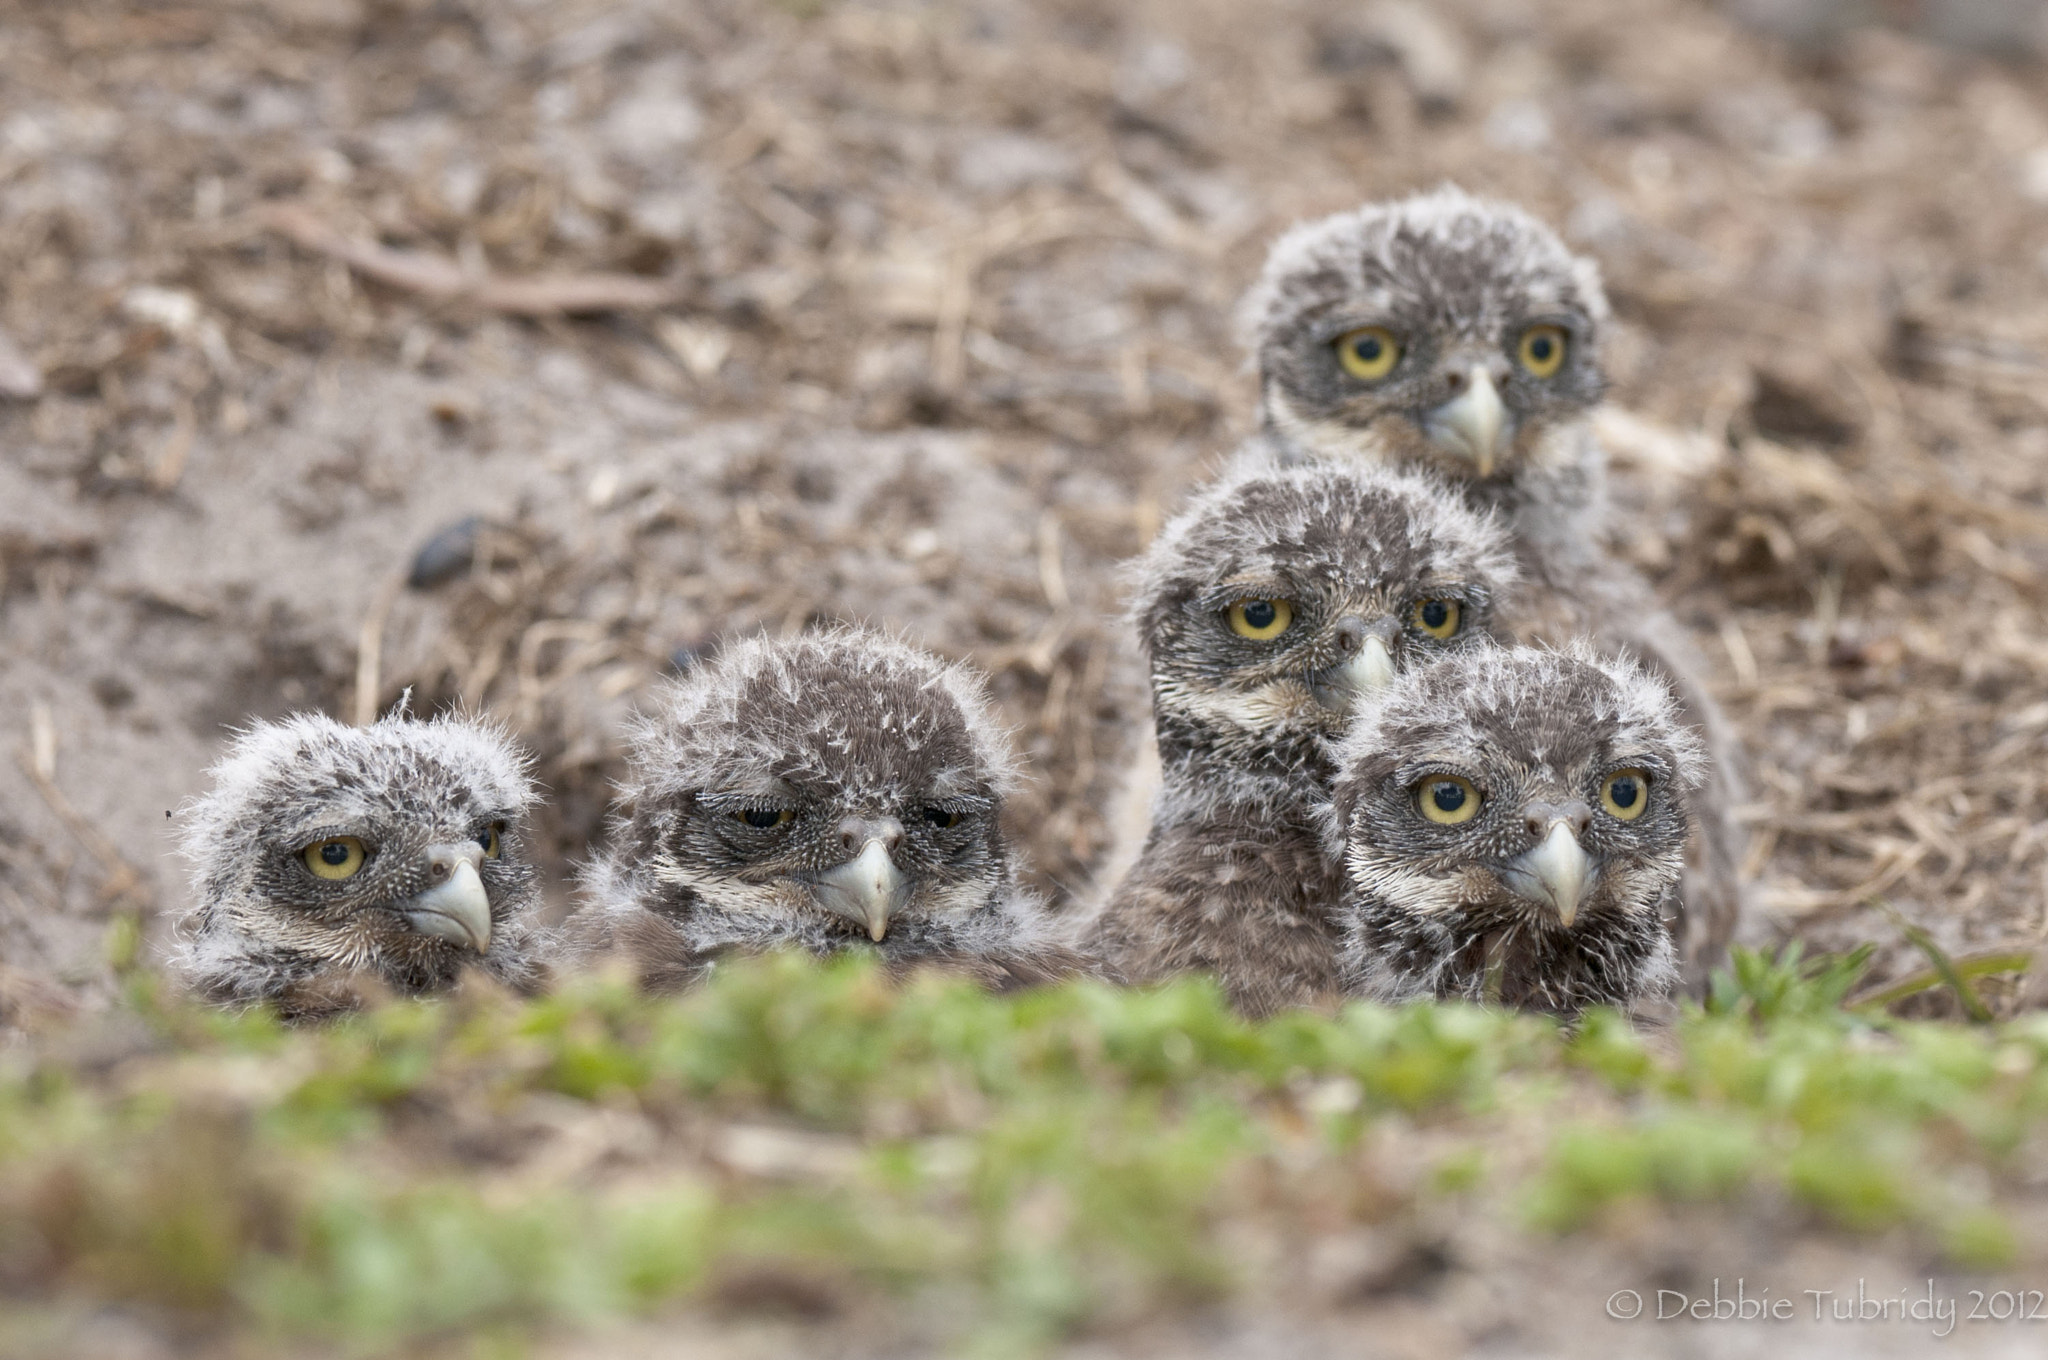 Photograph See, I Told You We Had Visitors by Debbie Tubridy on 500px